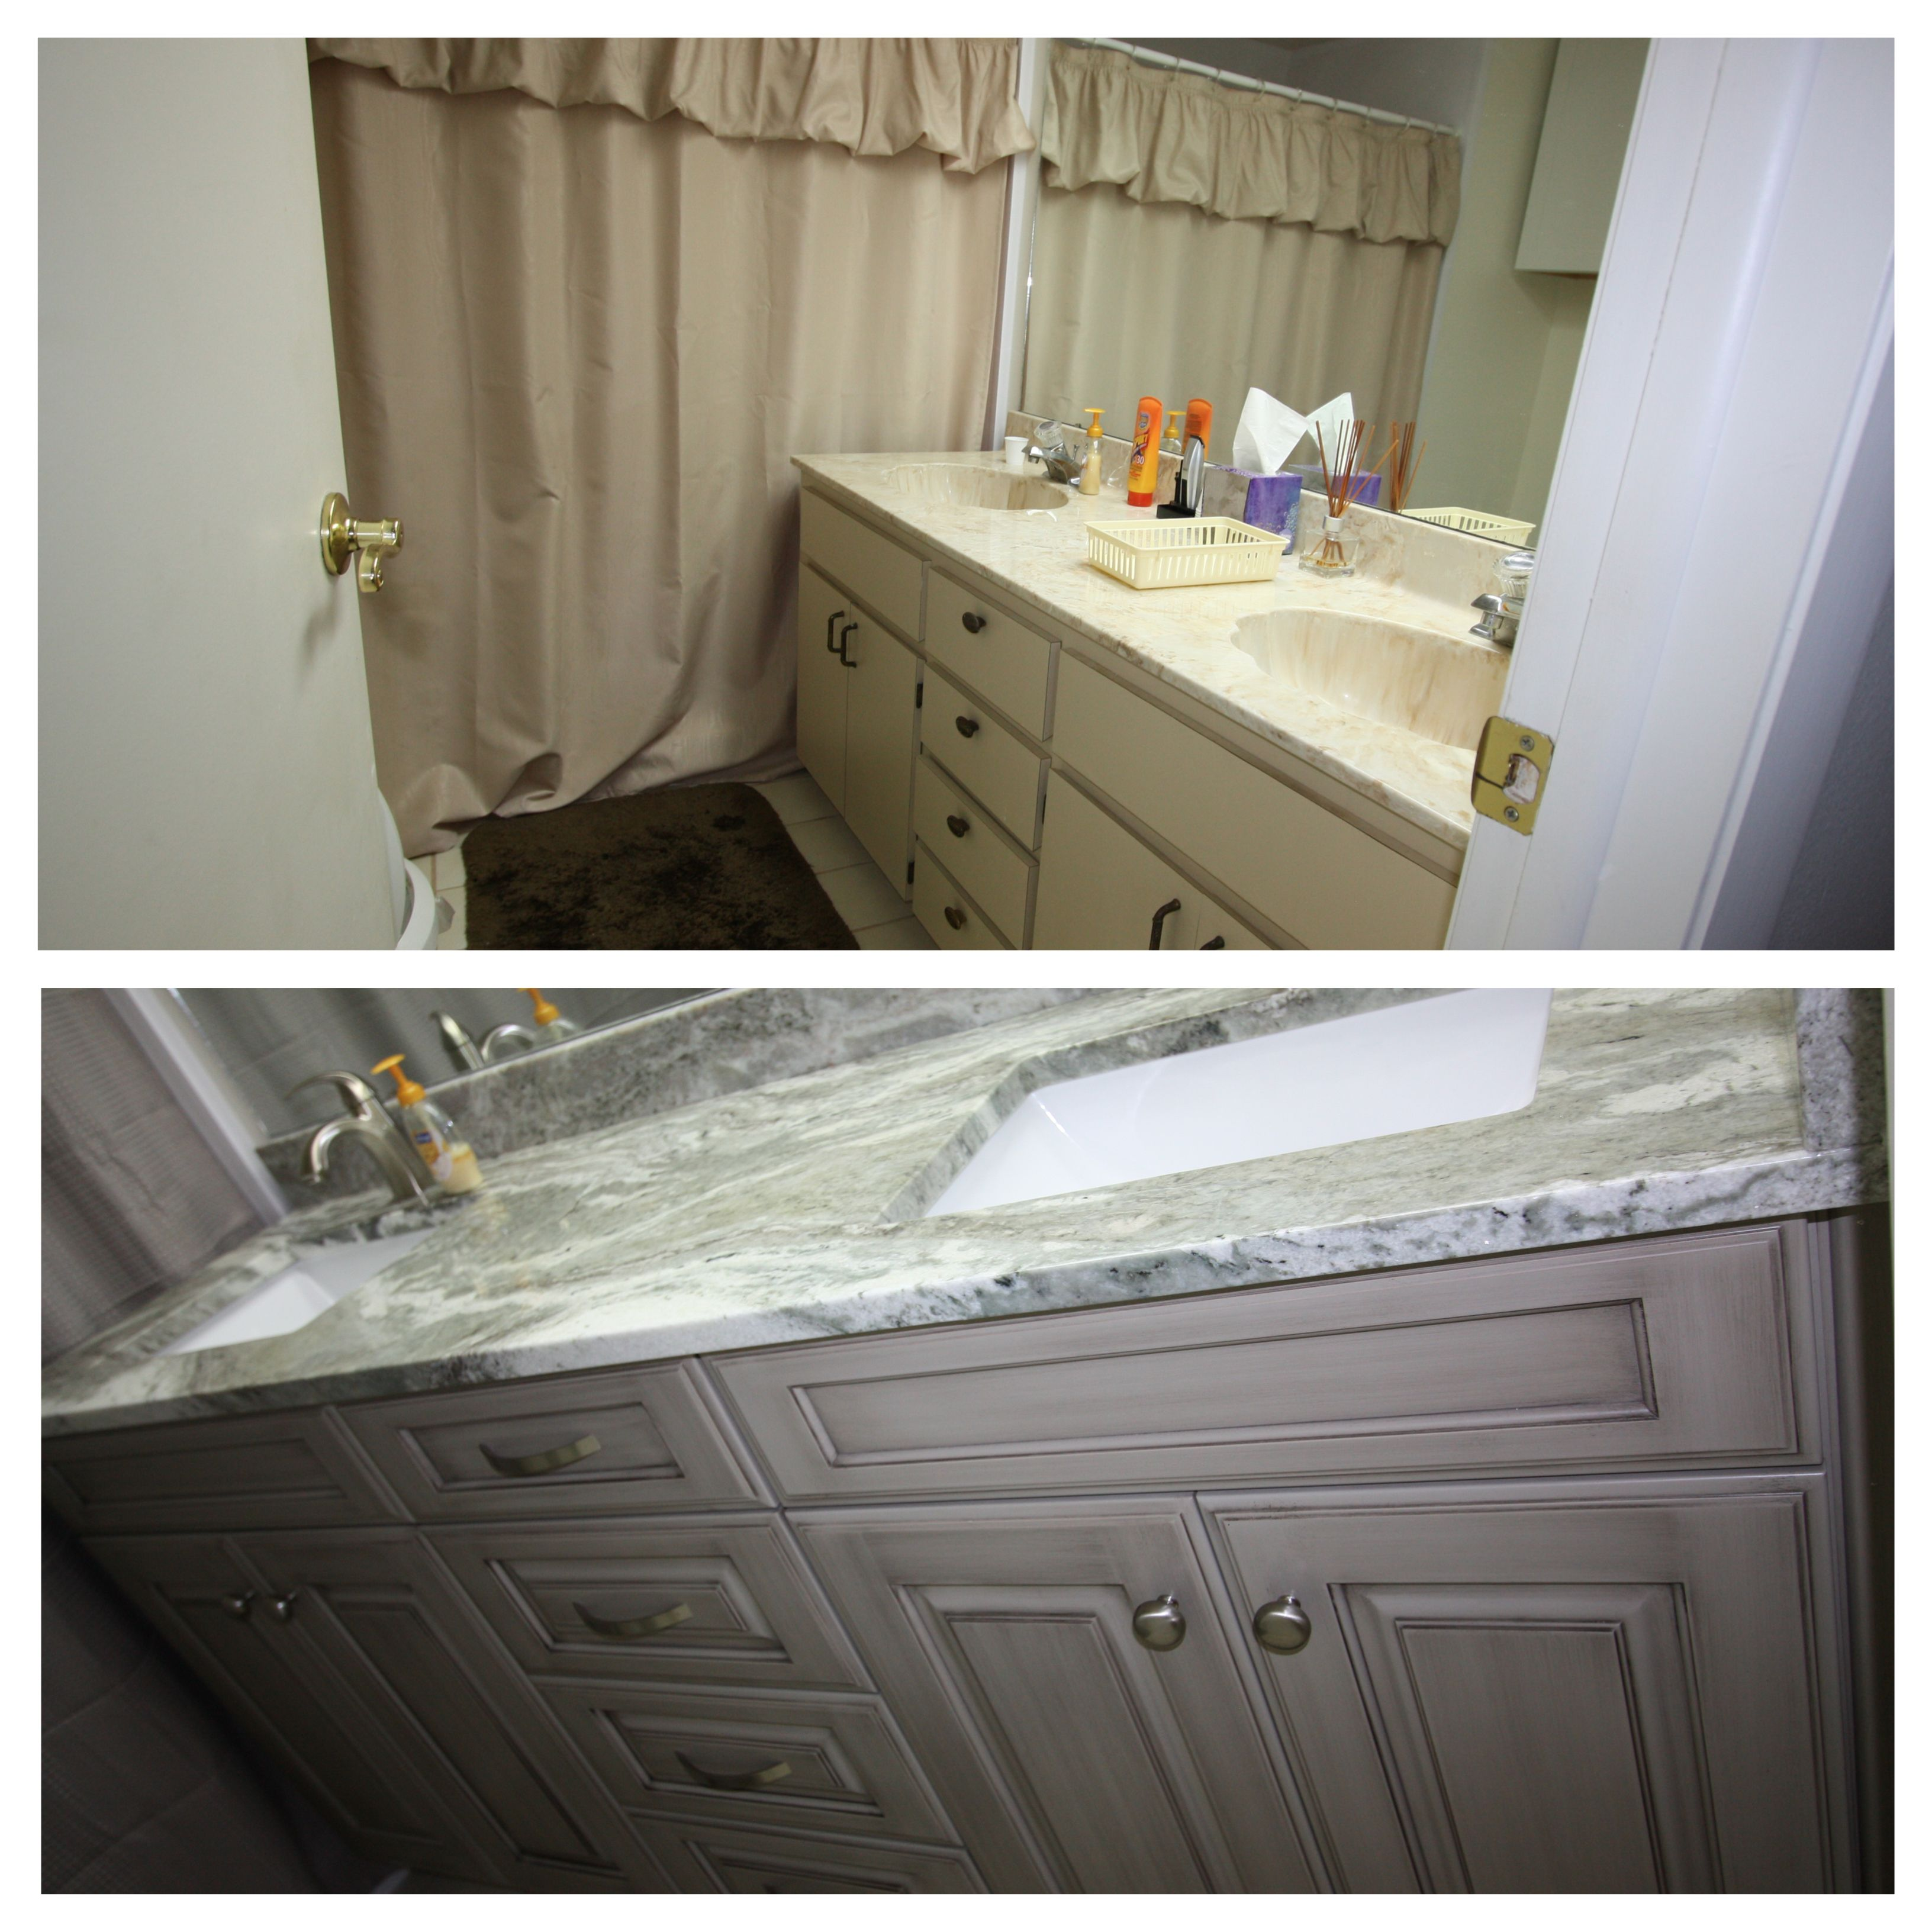 Kitchen And Bathroom Remodeling Contractors: We Completed A Master Bathroom Remodeling Project For Our